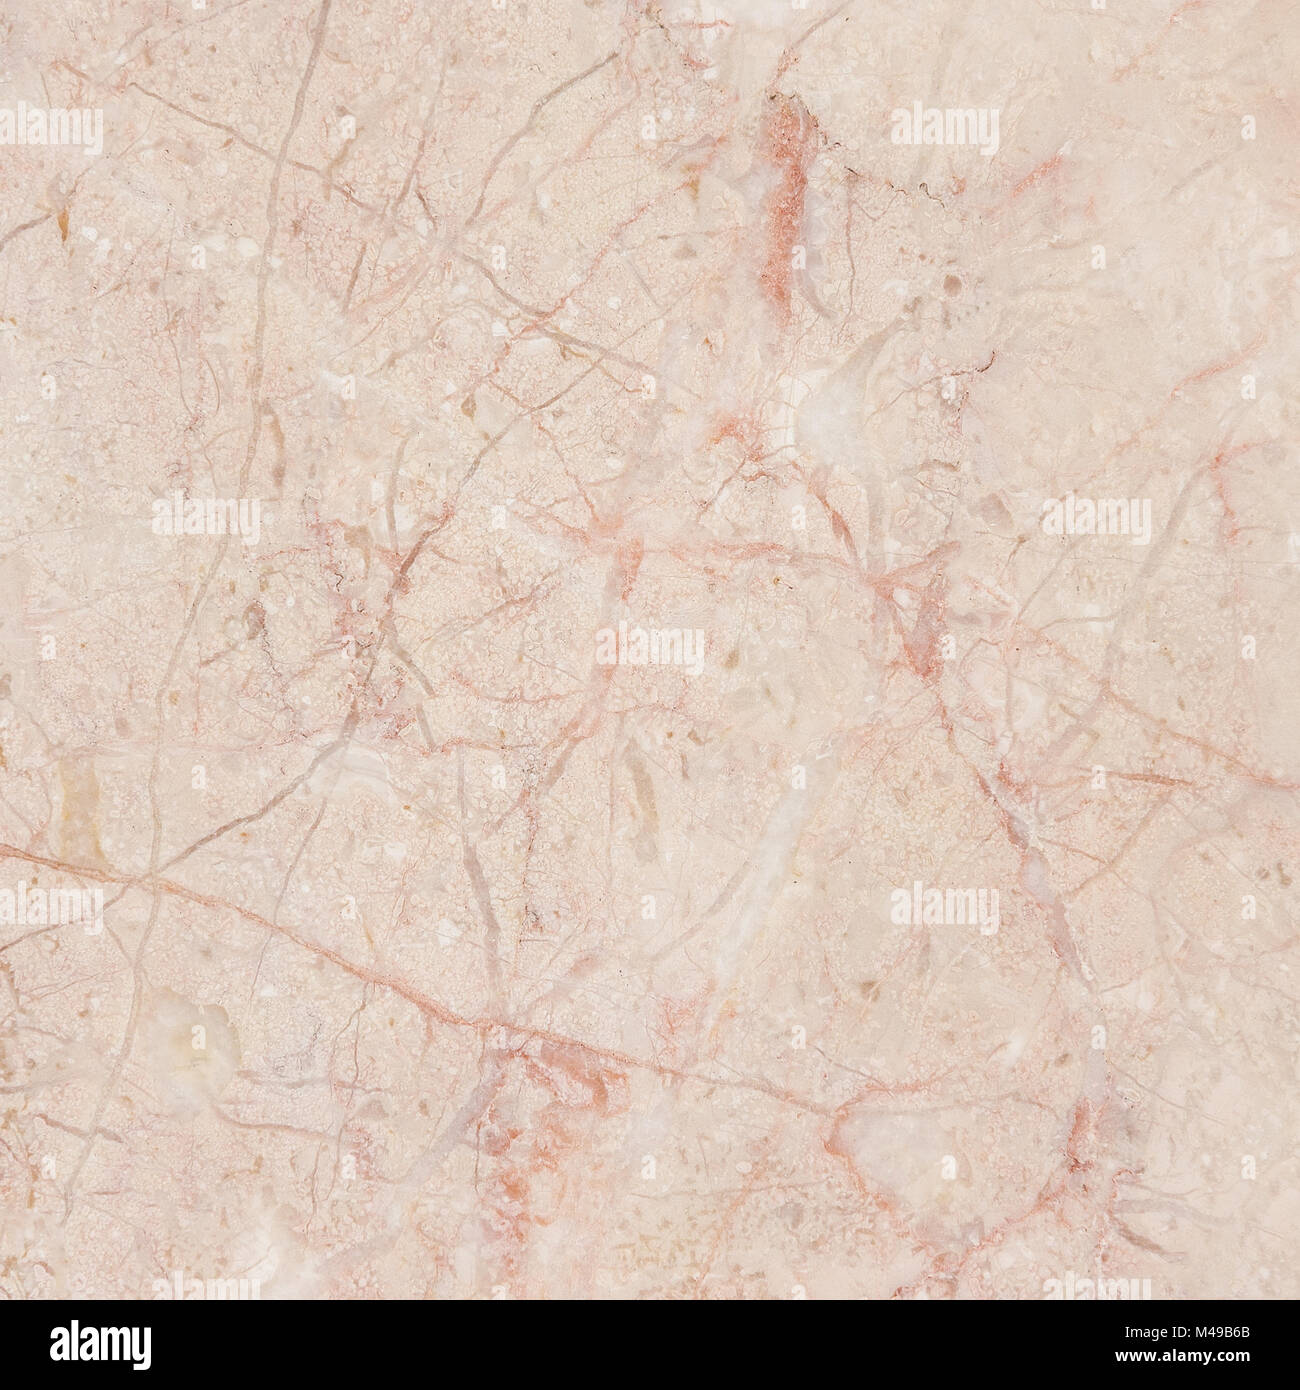 Italian Marble Texture High Resolution Stock Photography And Images Alamy